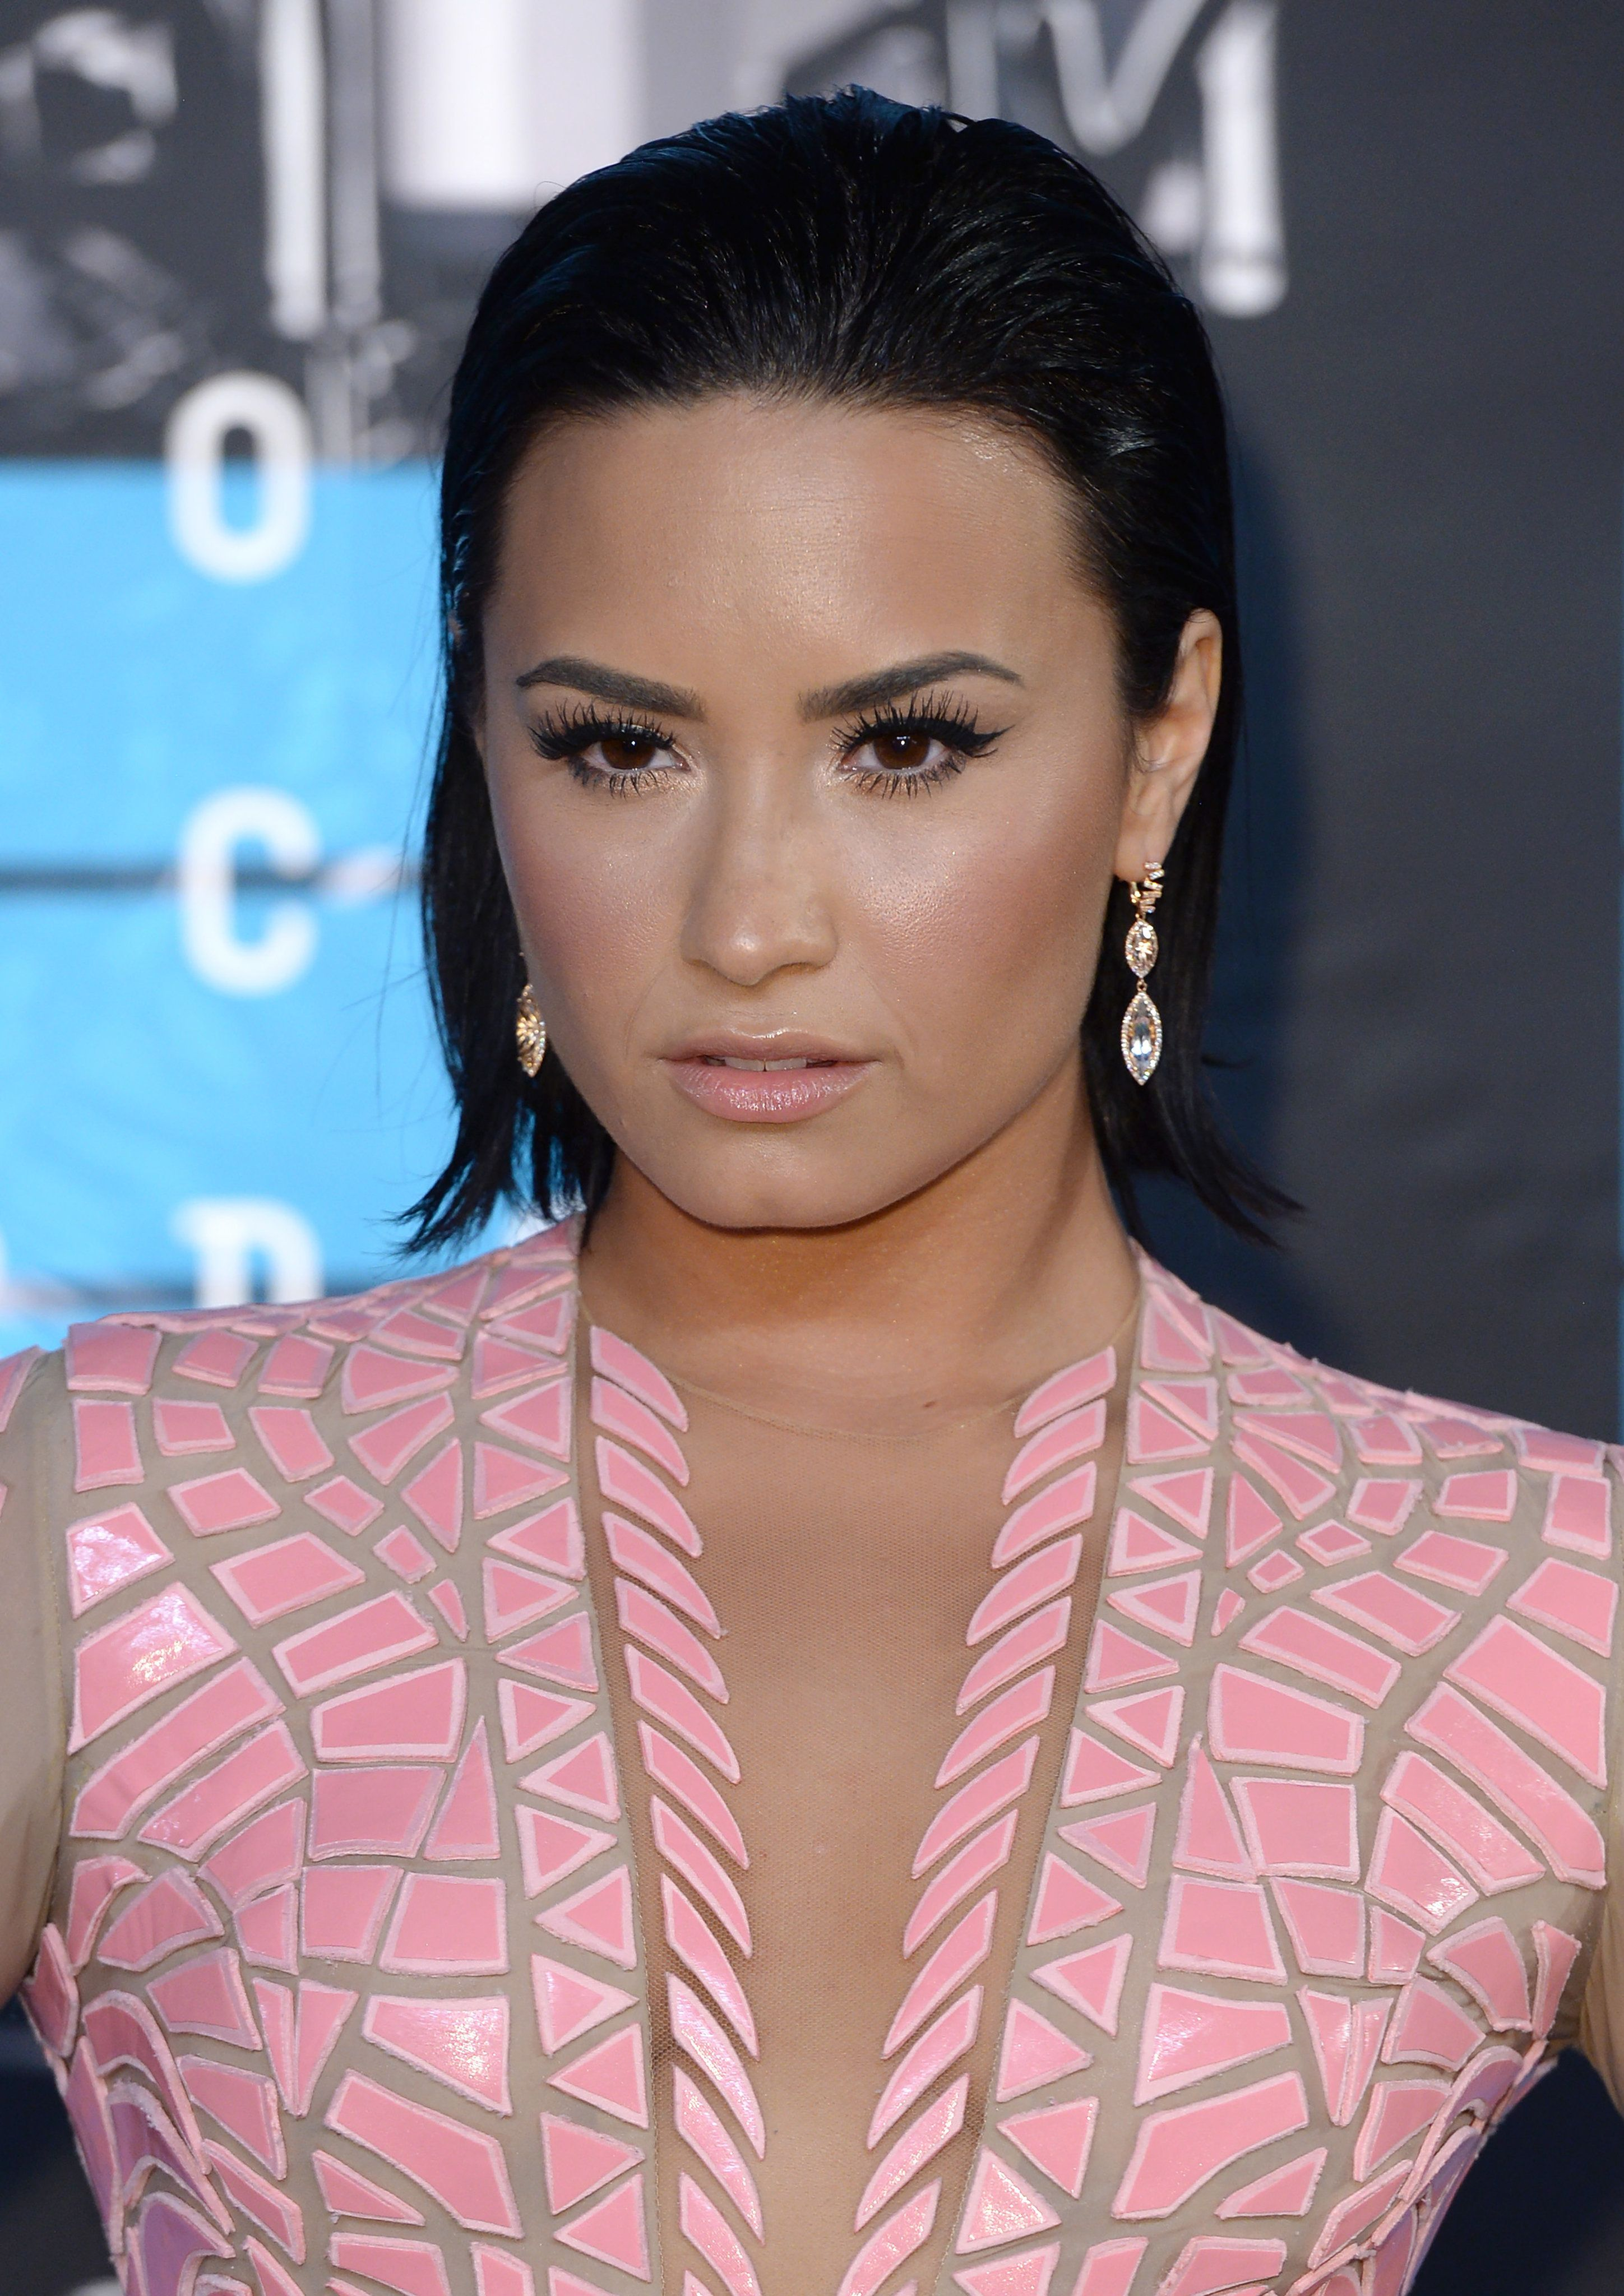 Stars Send Their Love And Support To Demi Lovato Following Suspected Drug Overdose